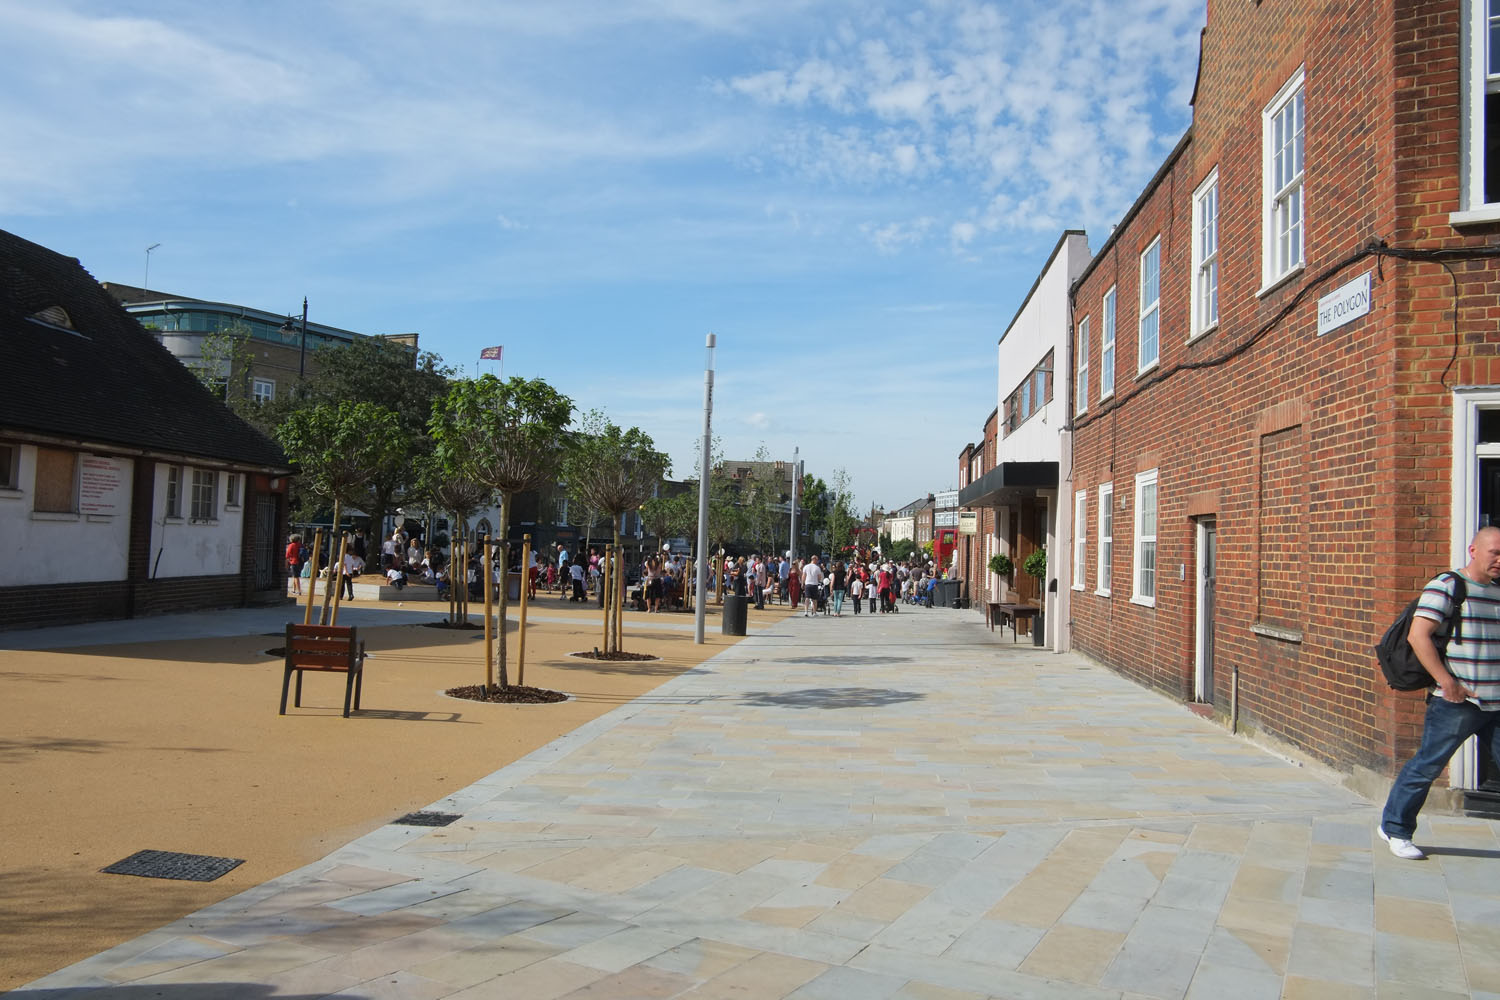 Clapham Gateway Public Realm by Marks Barfield Architects